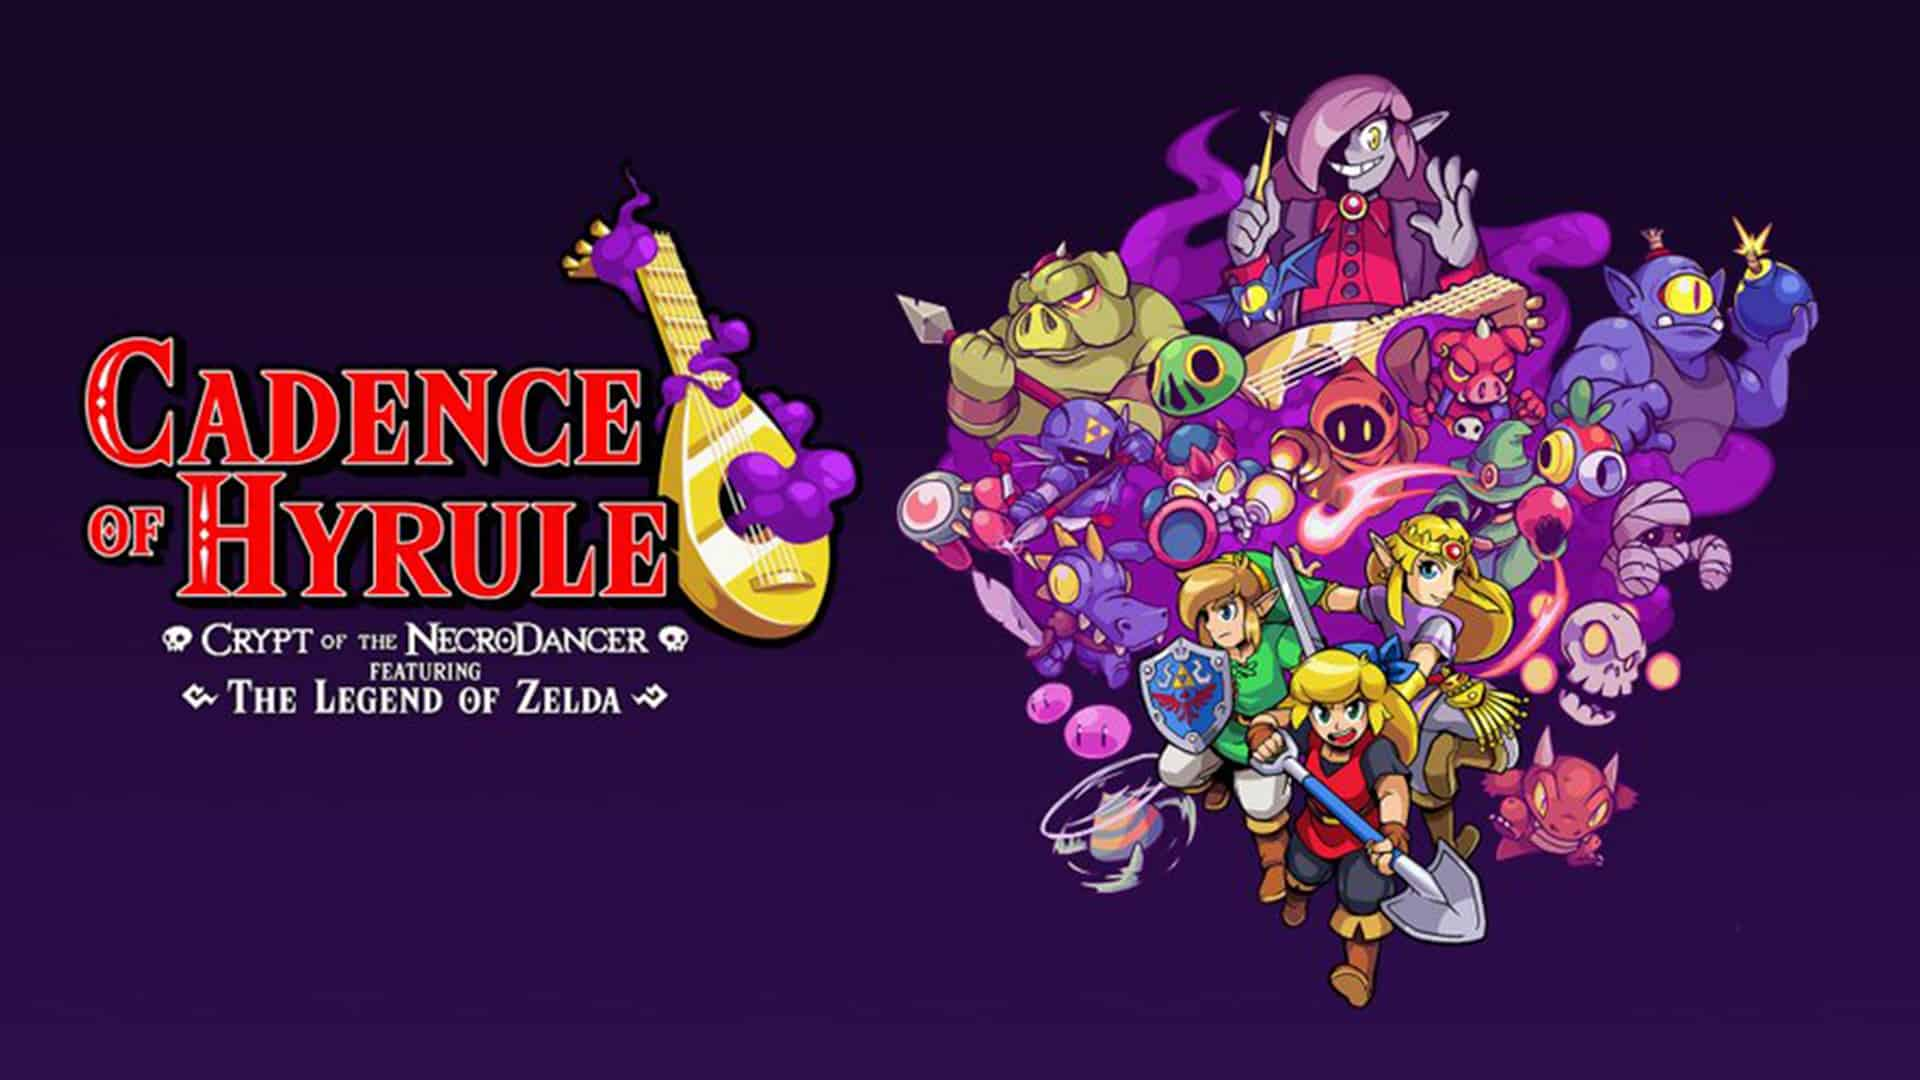 Cadence of Hyrule – Crypt of the NecroDancer Featuring The Legend of Zelda Available Now On Nintendo Switch